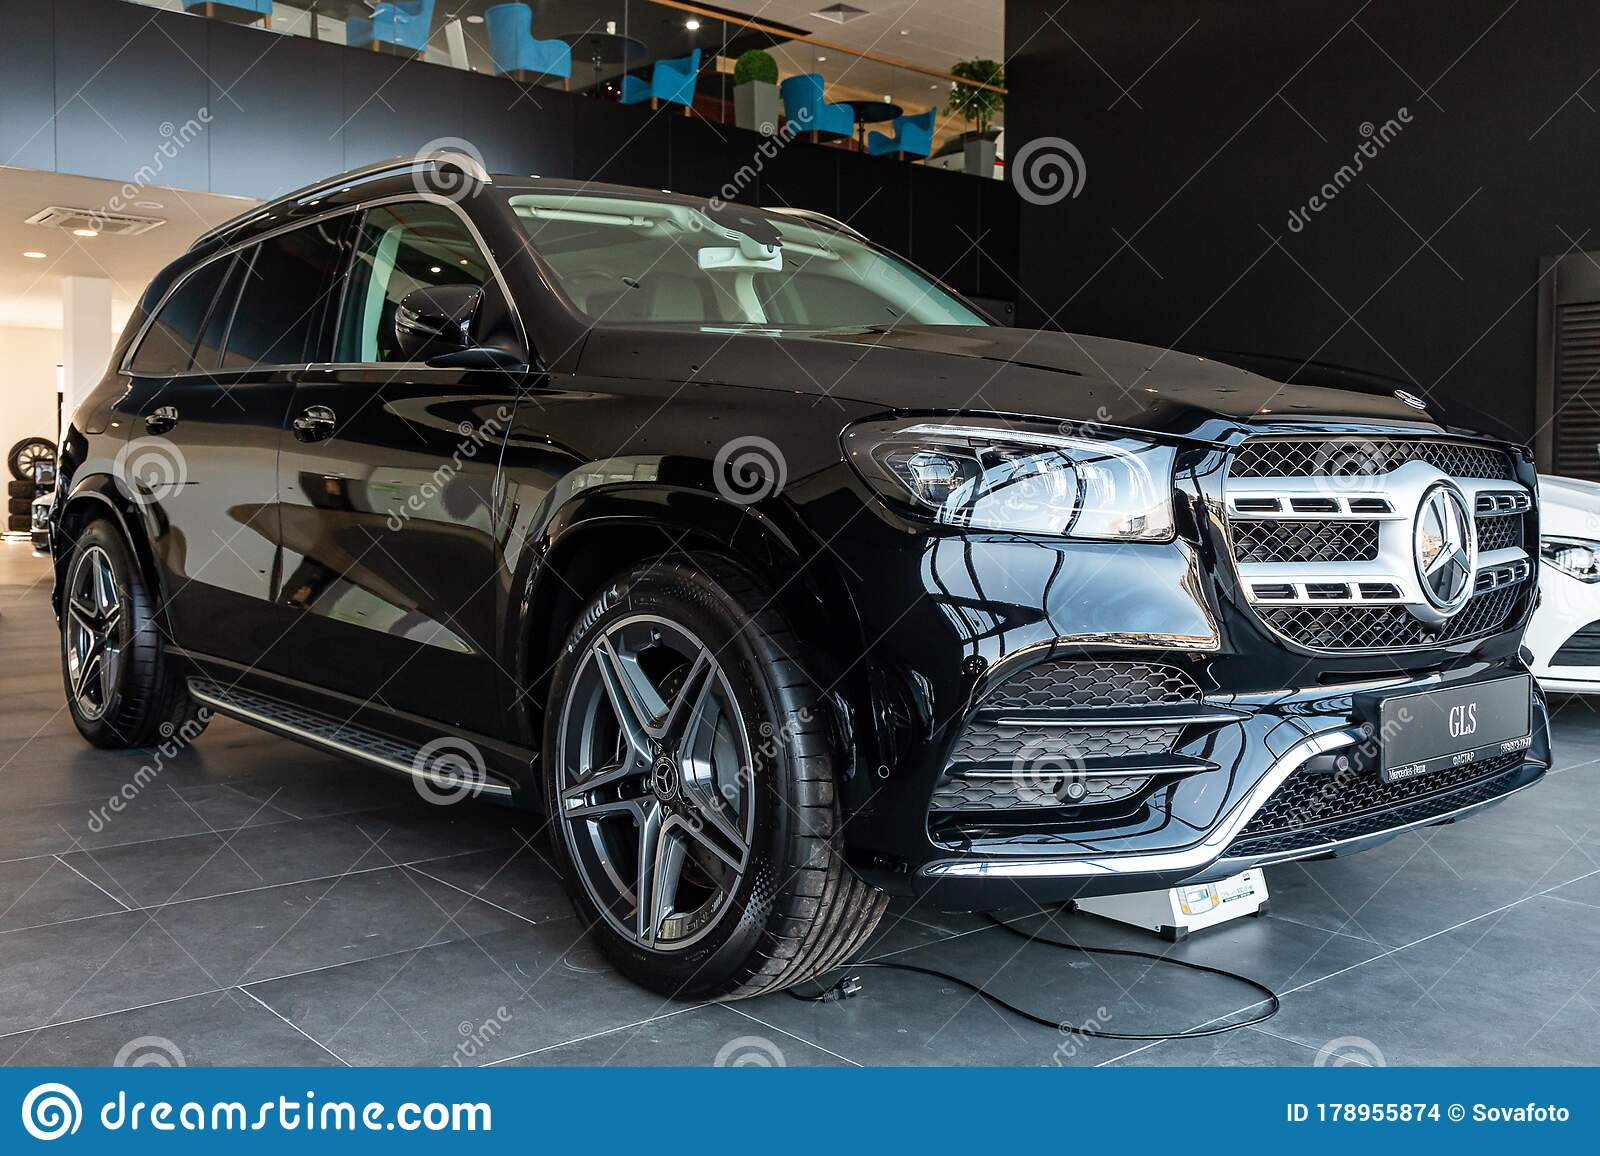 Novosibirsk Russia April 06 2020 Mercedes Benz Gls Class 450 Editorial Stock Image Image Of Motion Editorial 178955874